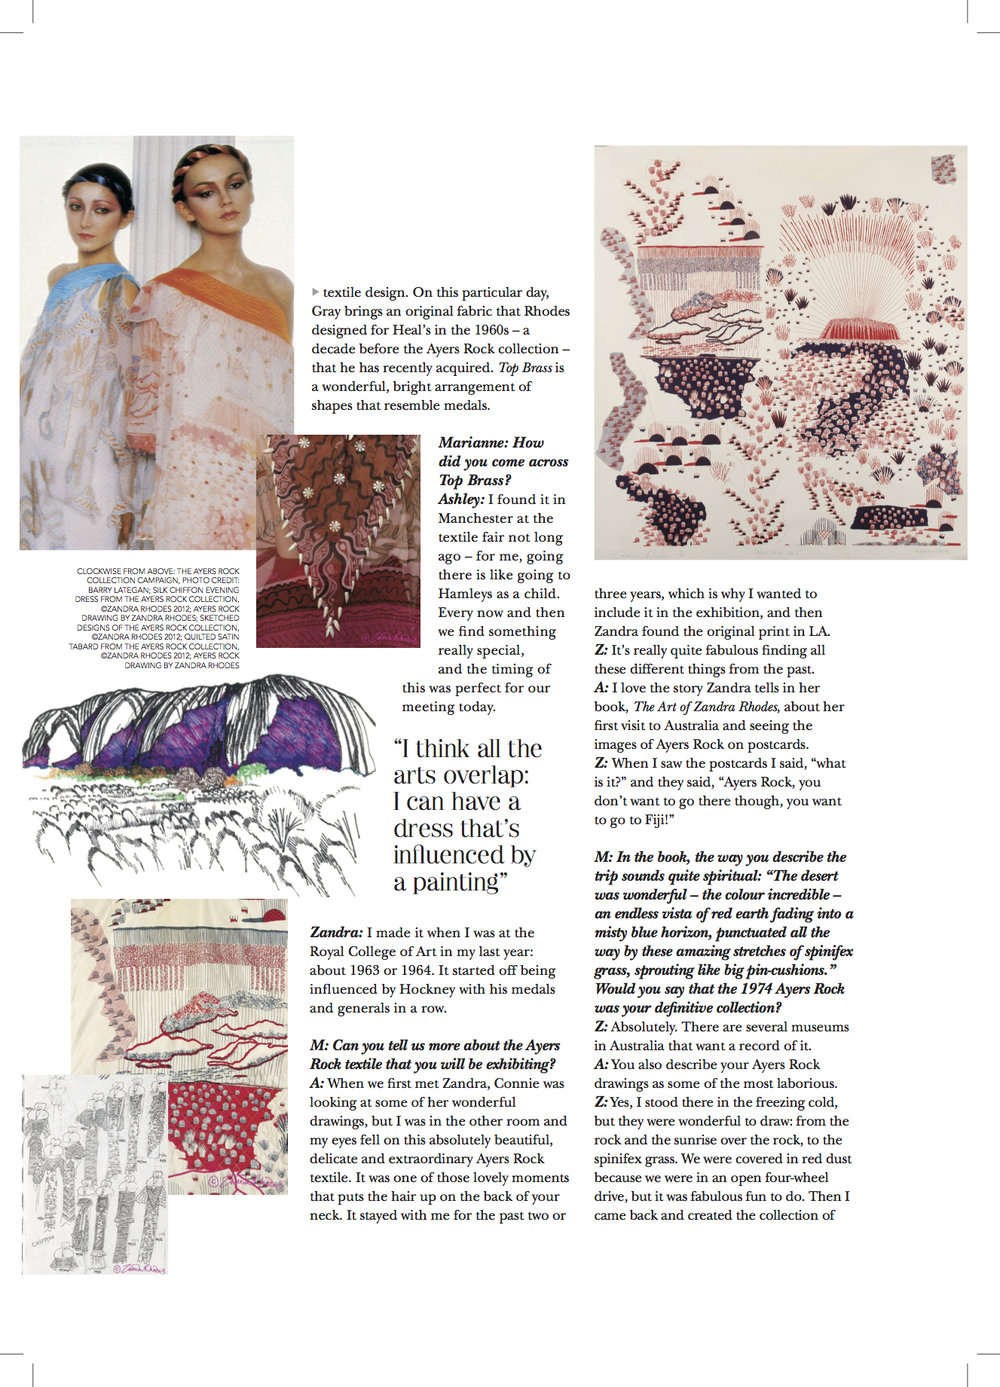 078 MAYF OCT 17 INTERIORS - FEATURE - ZANDRA RHODES.jpg